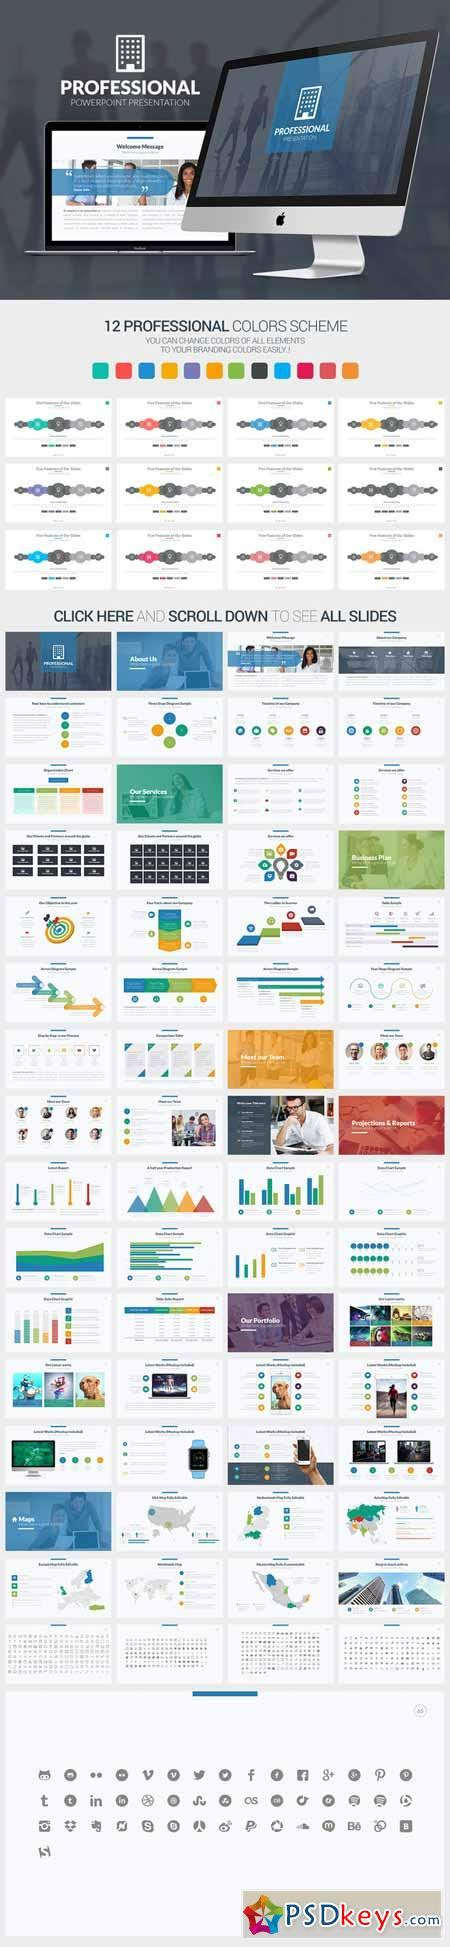 Collection of powerpoint templates free download rar powerpoint powerpoint templates download rar choice image toneelgroepblik Gallery